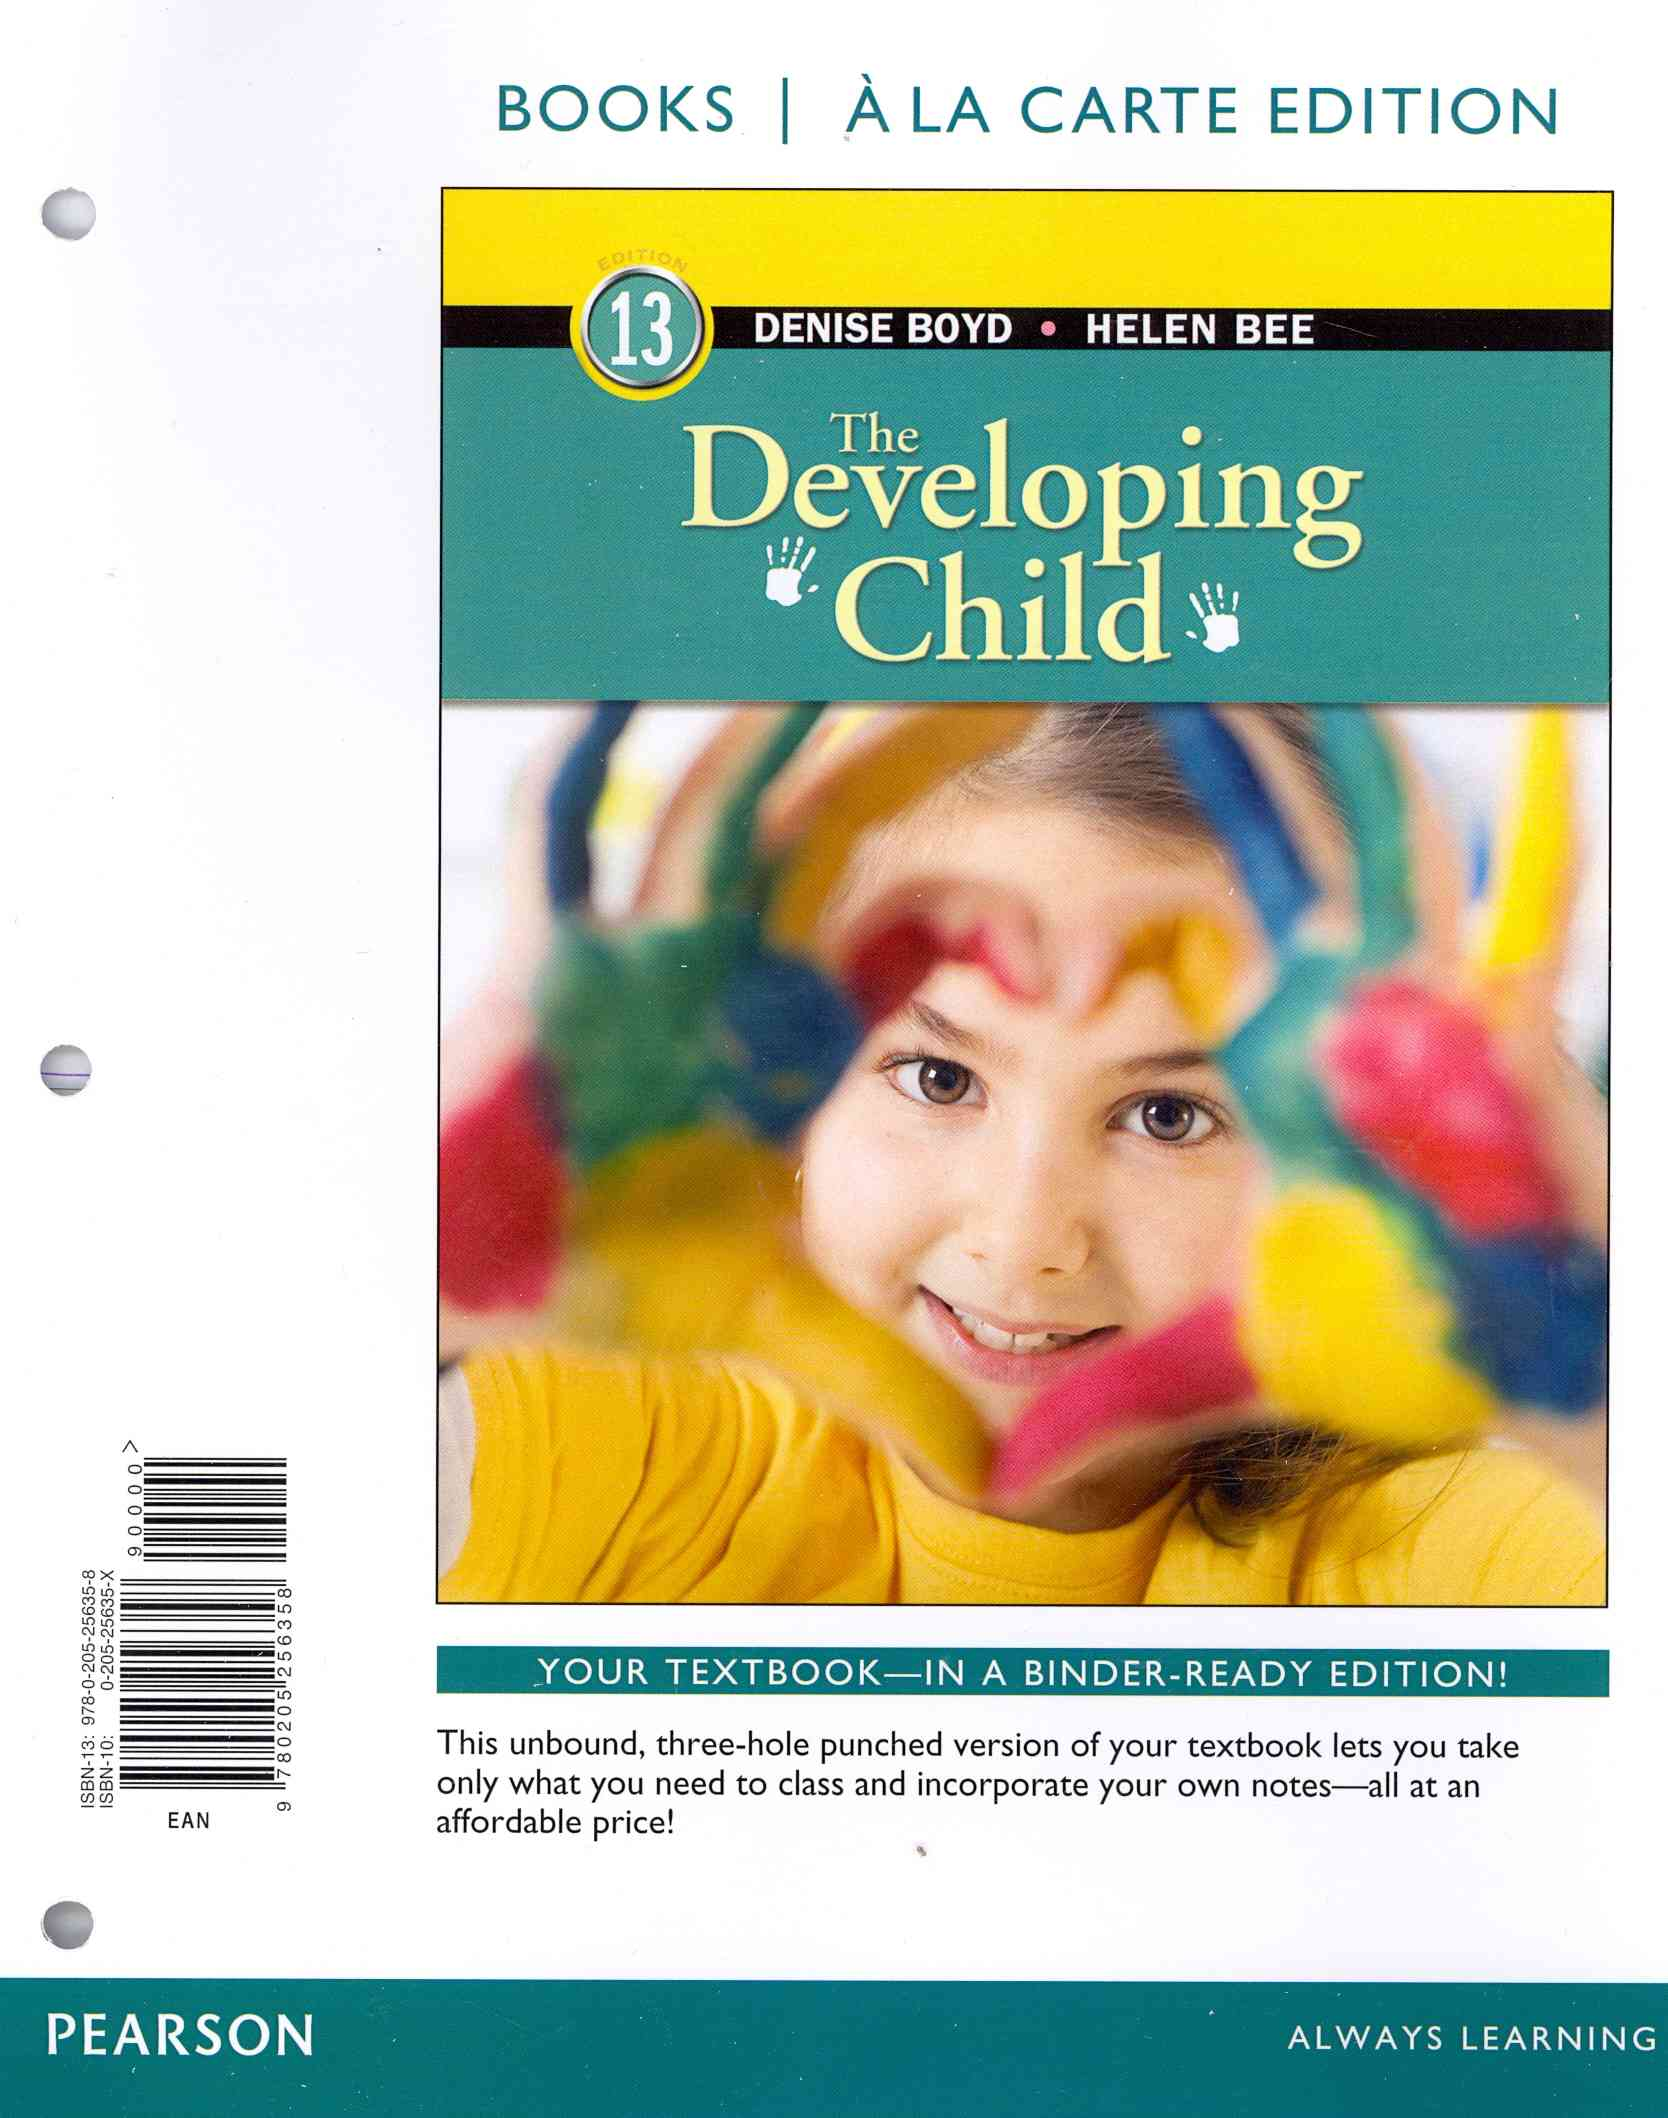 The Developing Child: Books a La Carte Edition (Other book format)